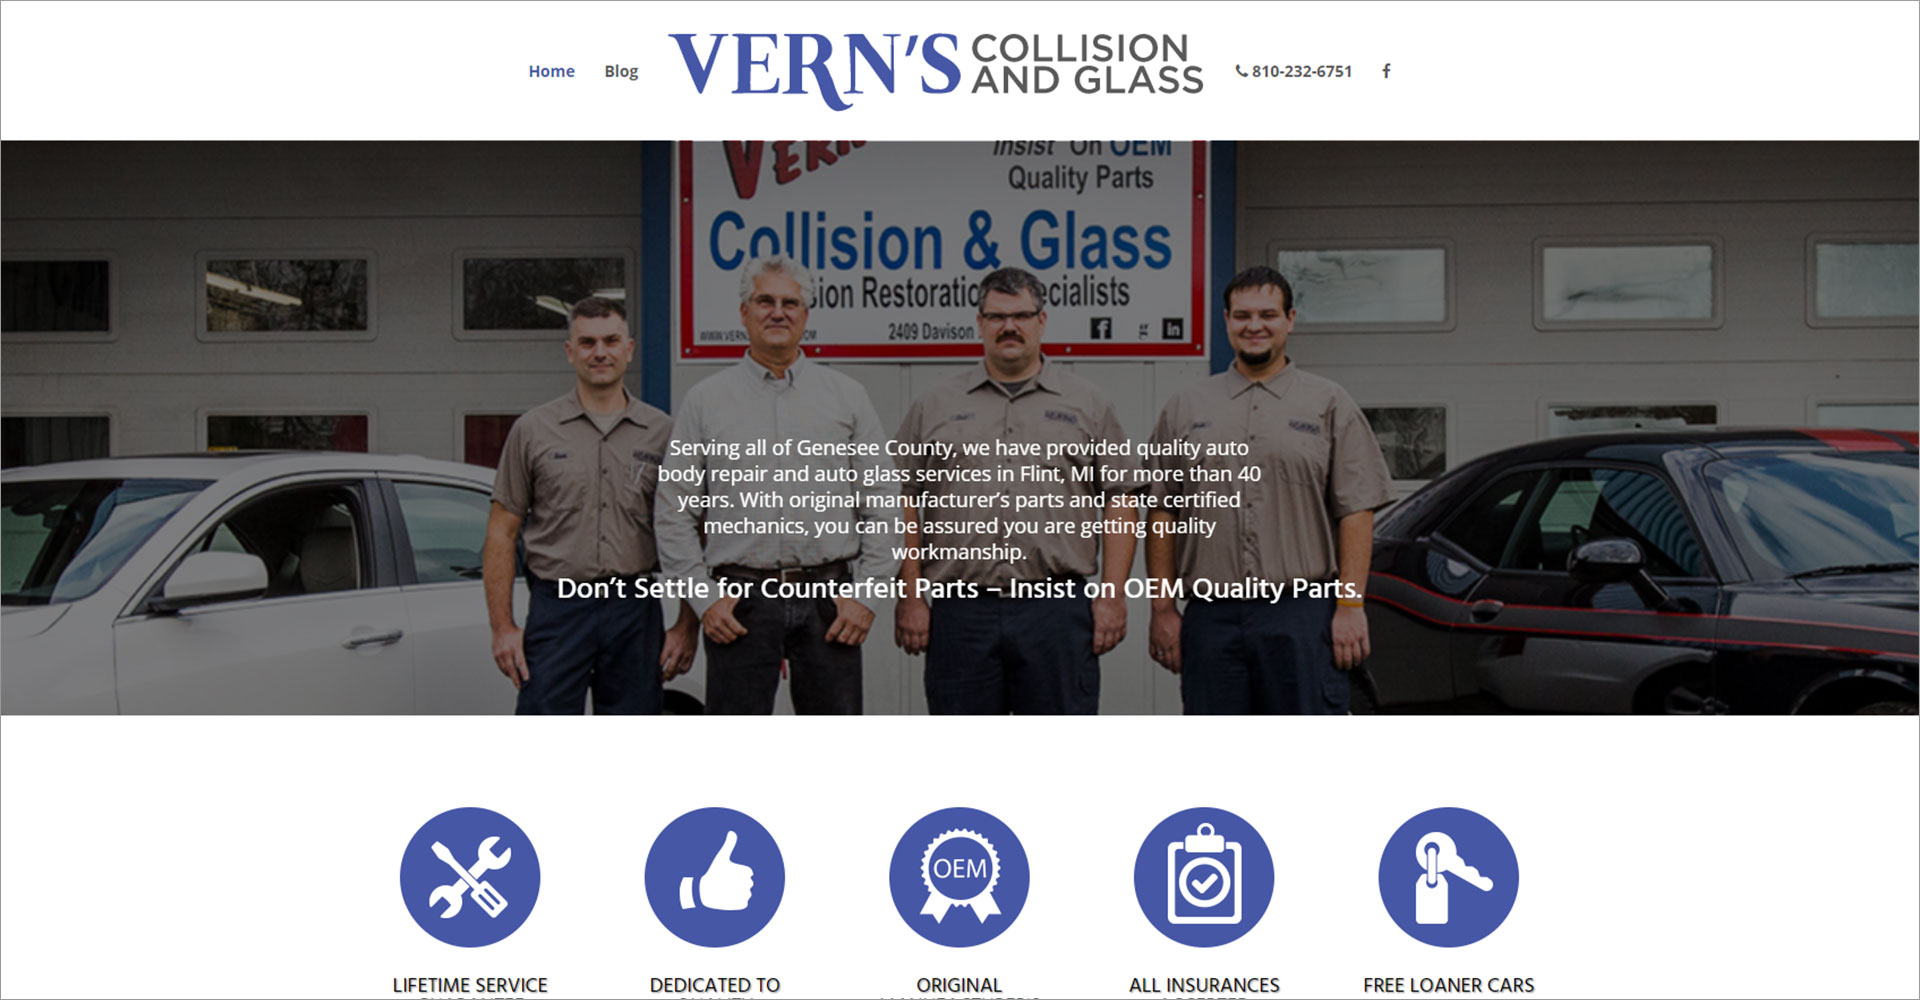 Vern's Collision and Glass - Zoda Design